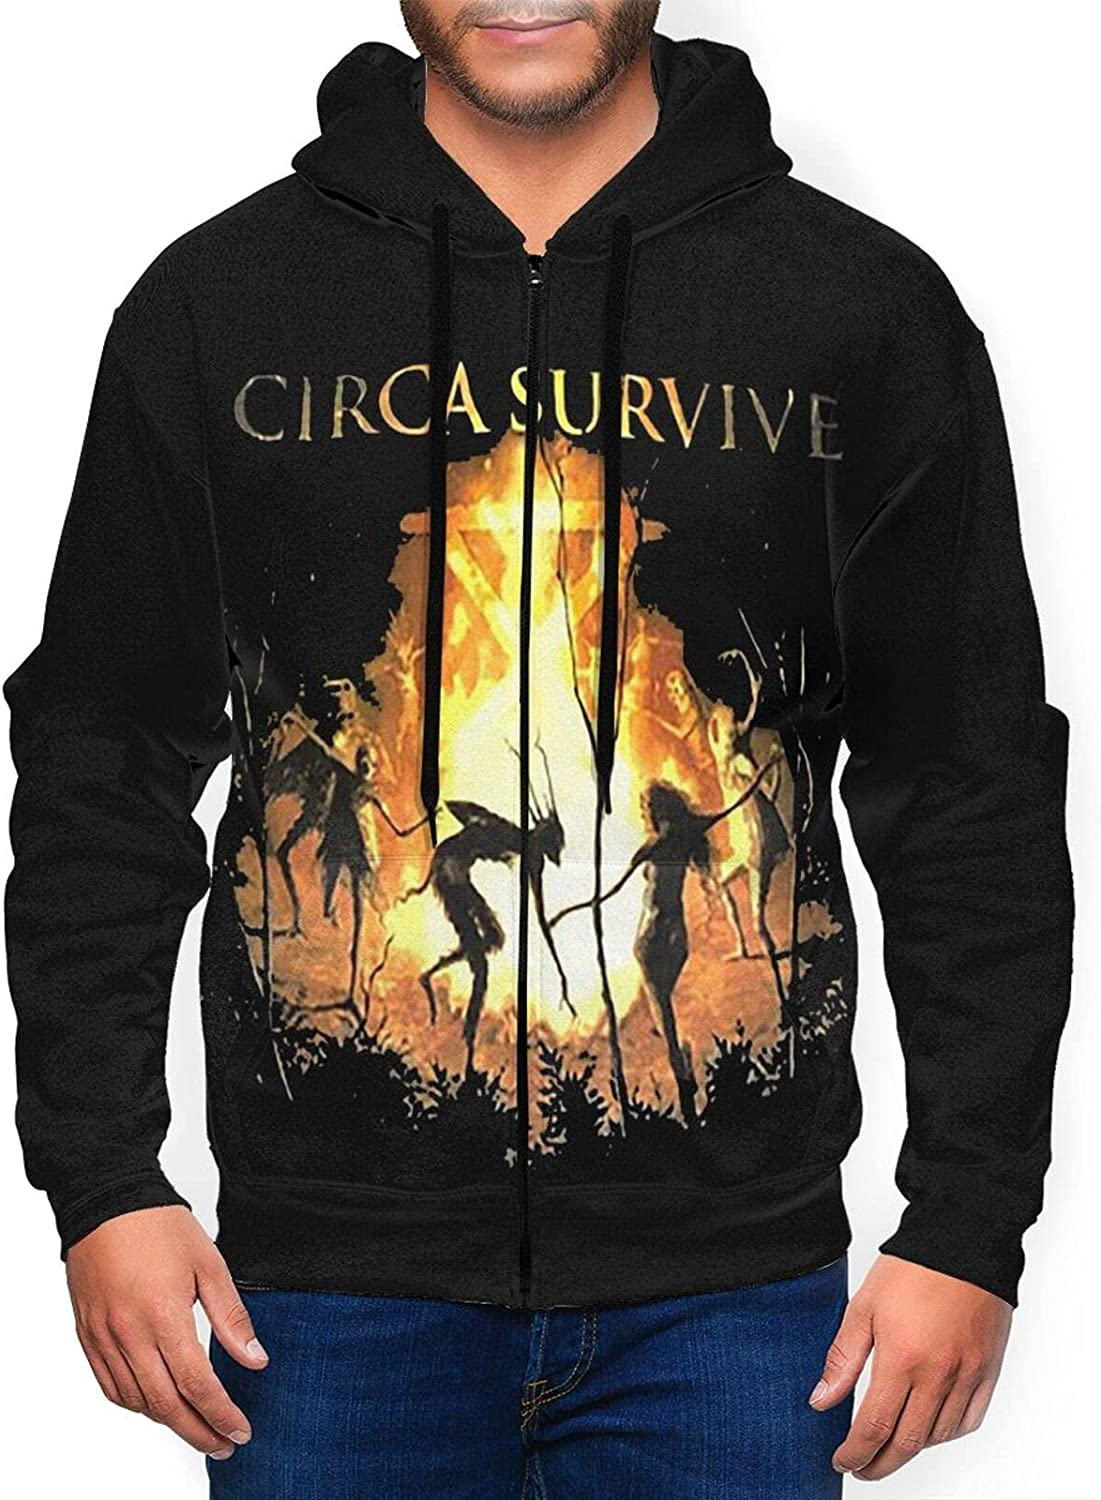 Circa Survive Men'S Hooded Industry No. 1 Zipper Purchase Casual Co Classic Jacket Shirt